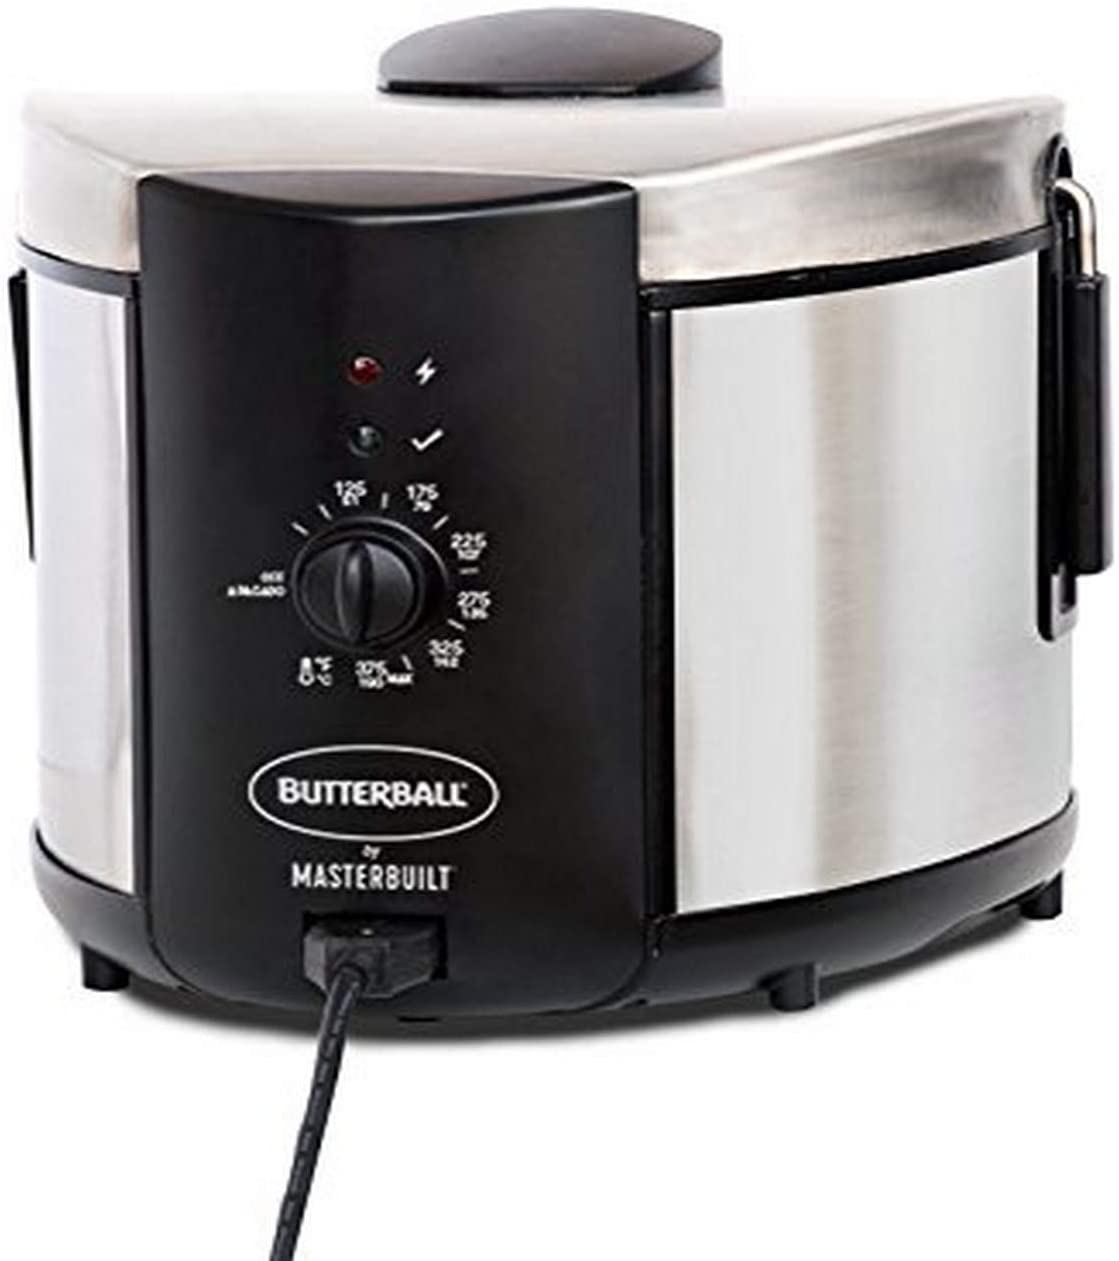 Masterbuilt MB23015018 5-Liter Electric Fryer, 5L - Standard, Stainless Steel